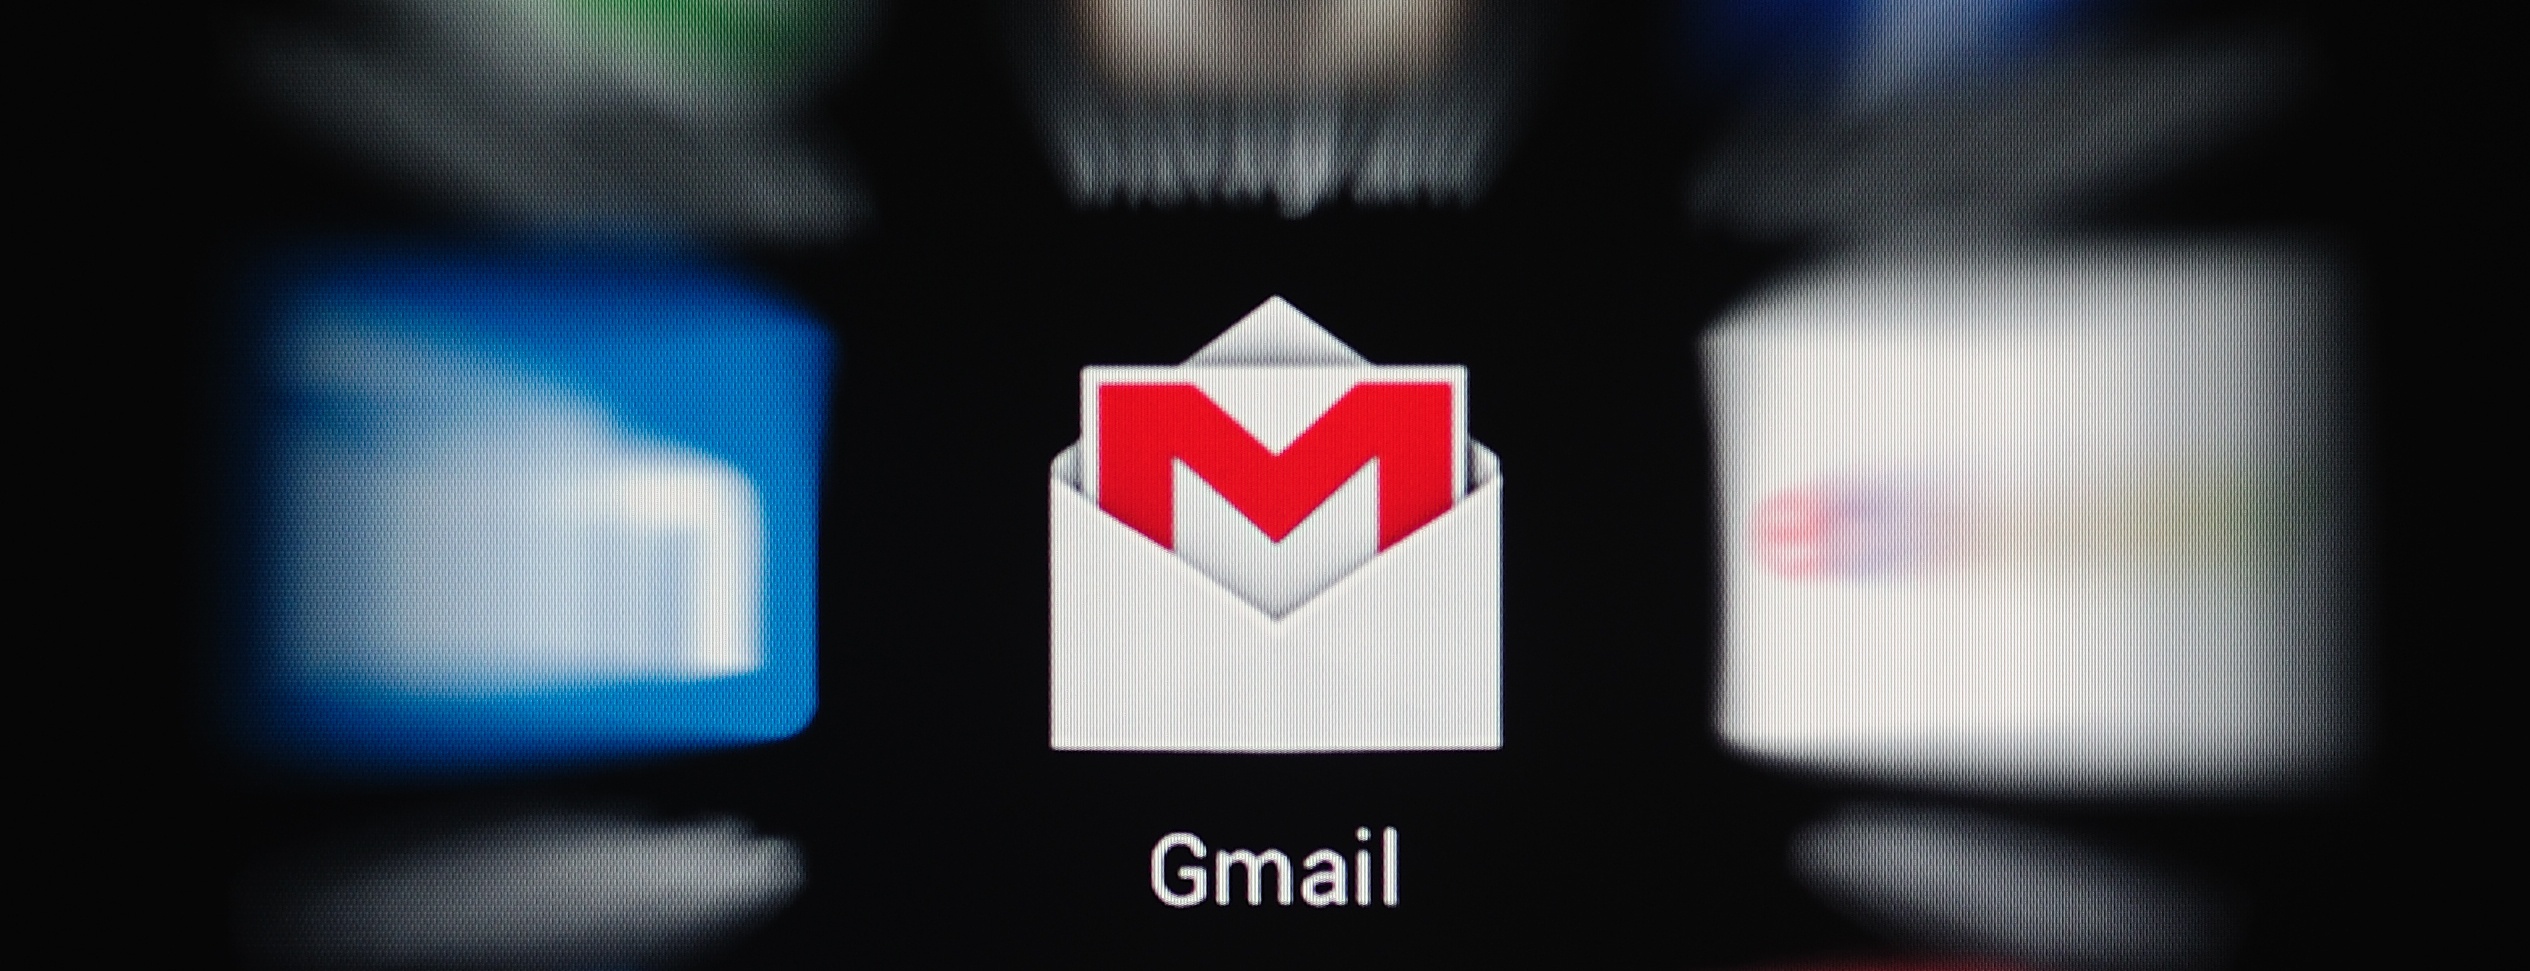 Google Updates Terms Of Service To Reflect Email Scanning Practices